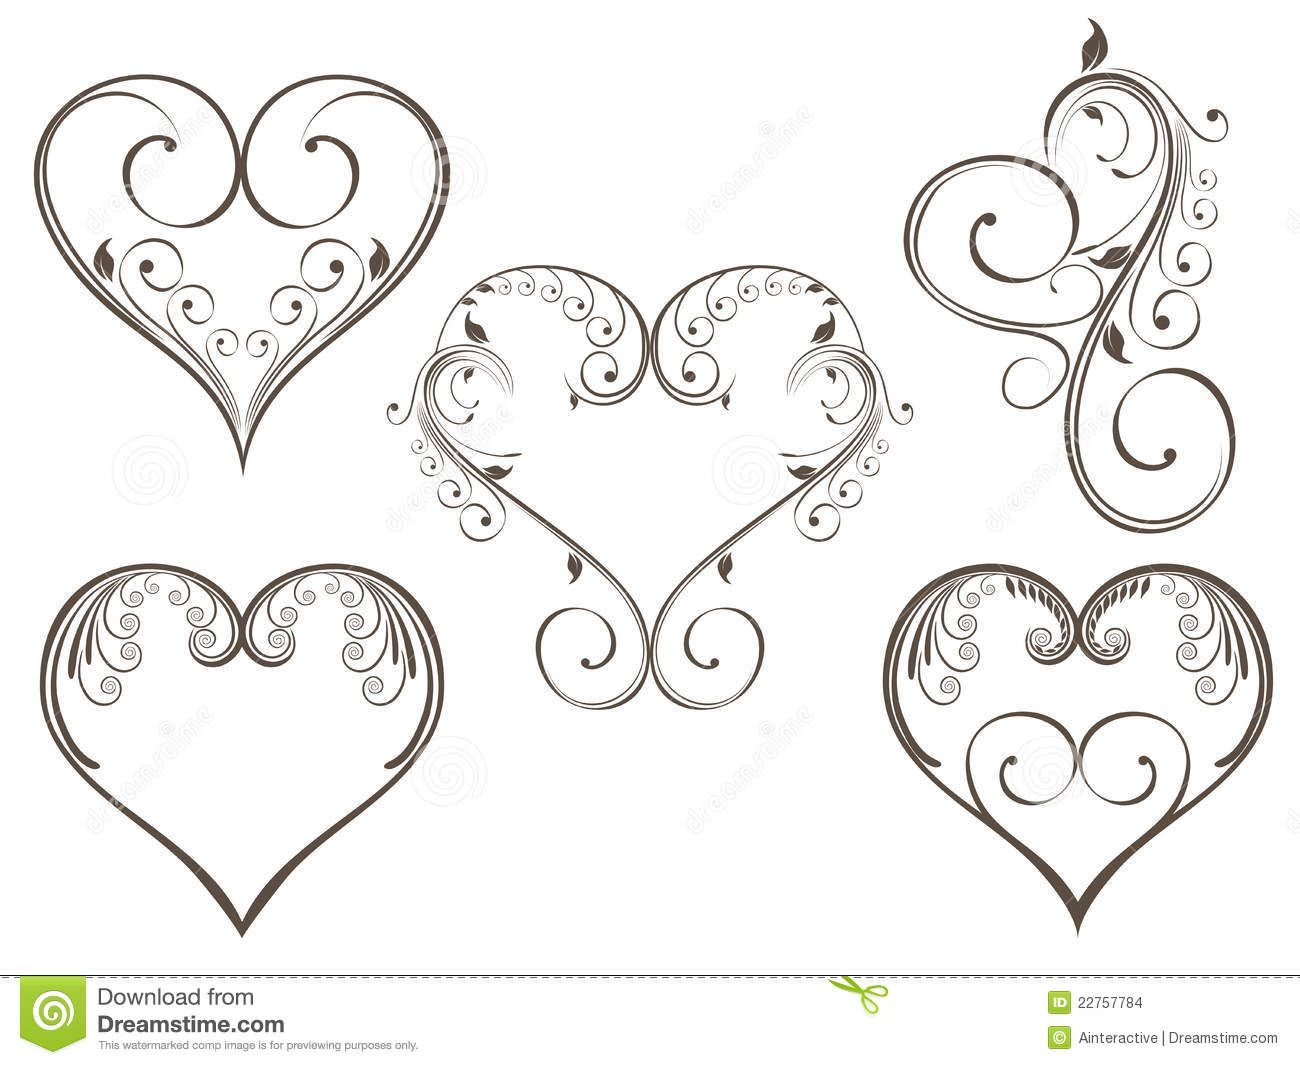 floral-heart-scrolls-22757784.jpg (1300×1065) | swish, swirl and ...